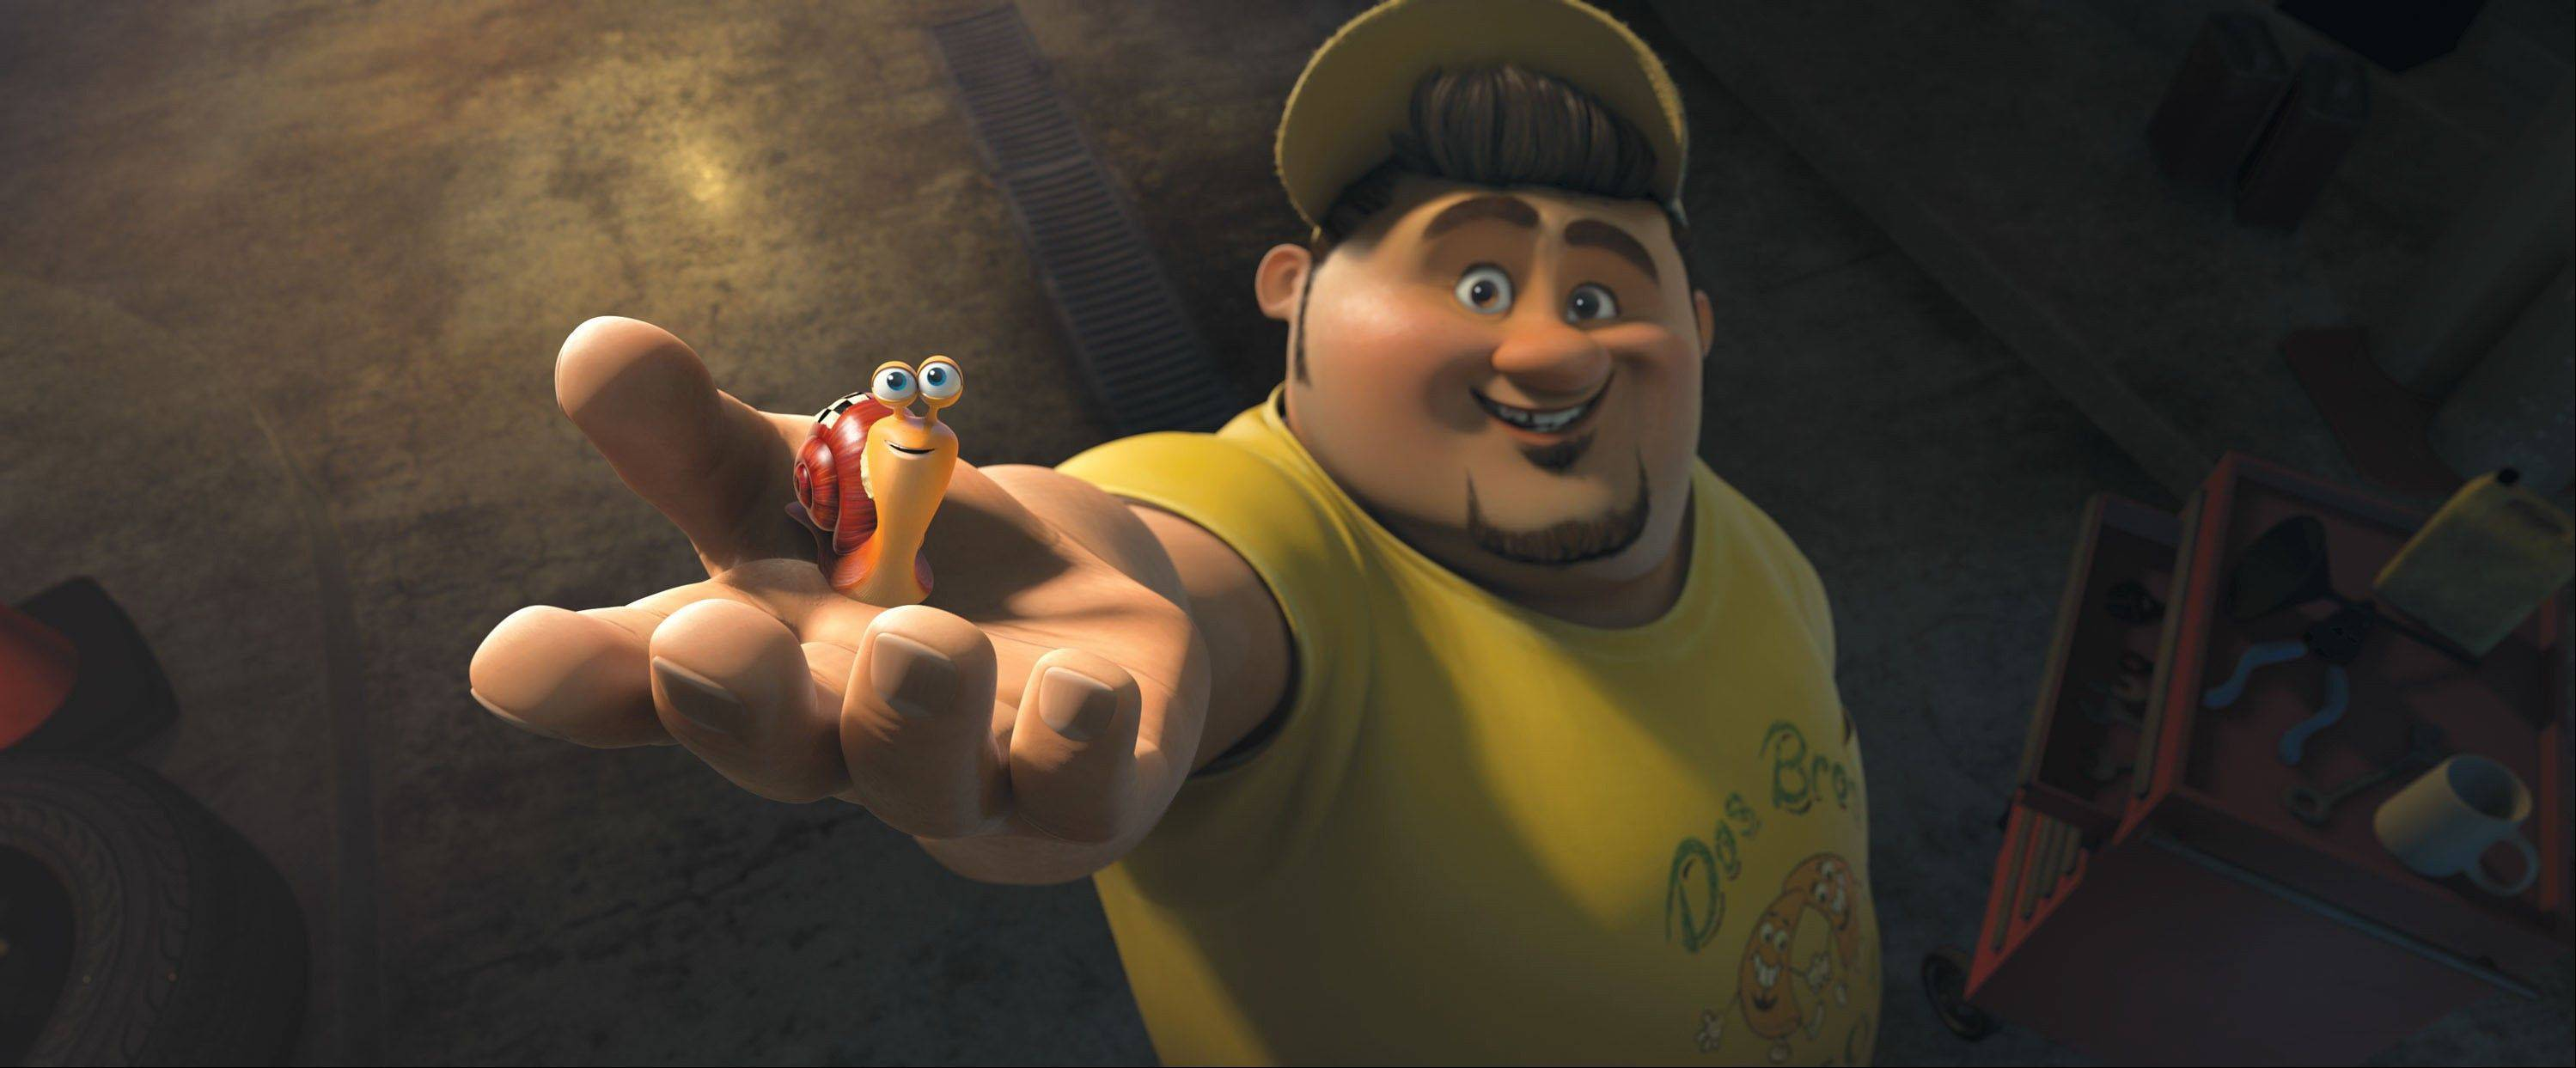 "Turbo, voiced by Ryan Reynolds, left, and Tito, voiced by Michael Pena, from the animated movie ""Turbo,"" about an underdog snail whose dreams kick into overdrive when he miraculously attains the power of super-speed."